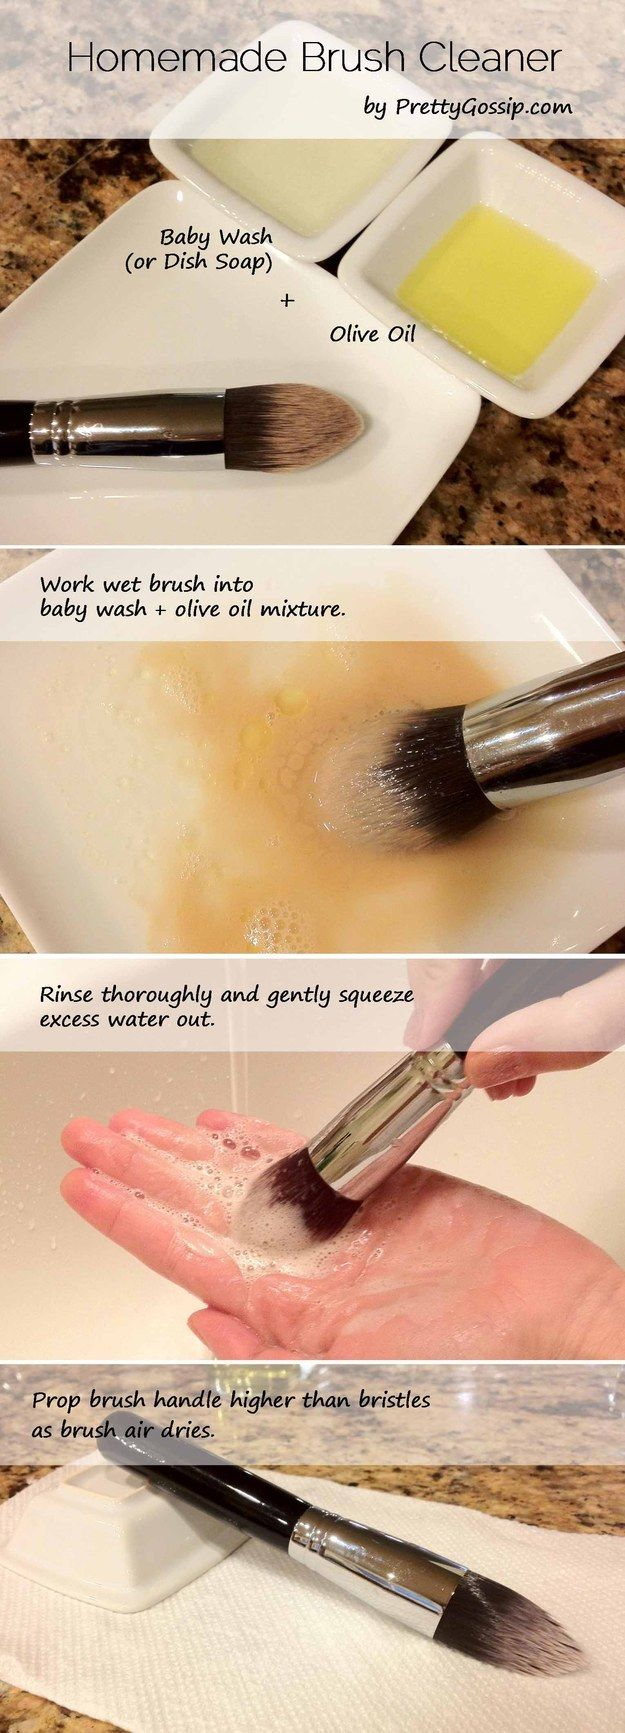 Swirl Your Makeup Brushes In A Diy Mixture Of Dish Soap And Olive